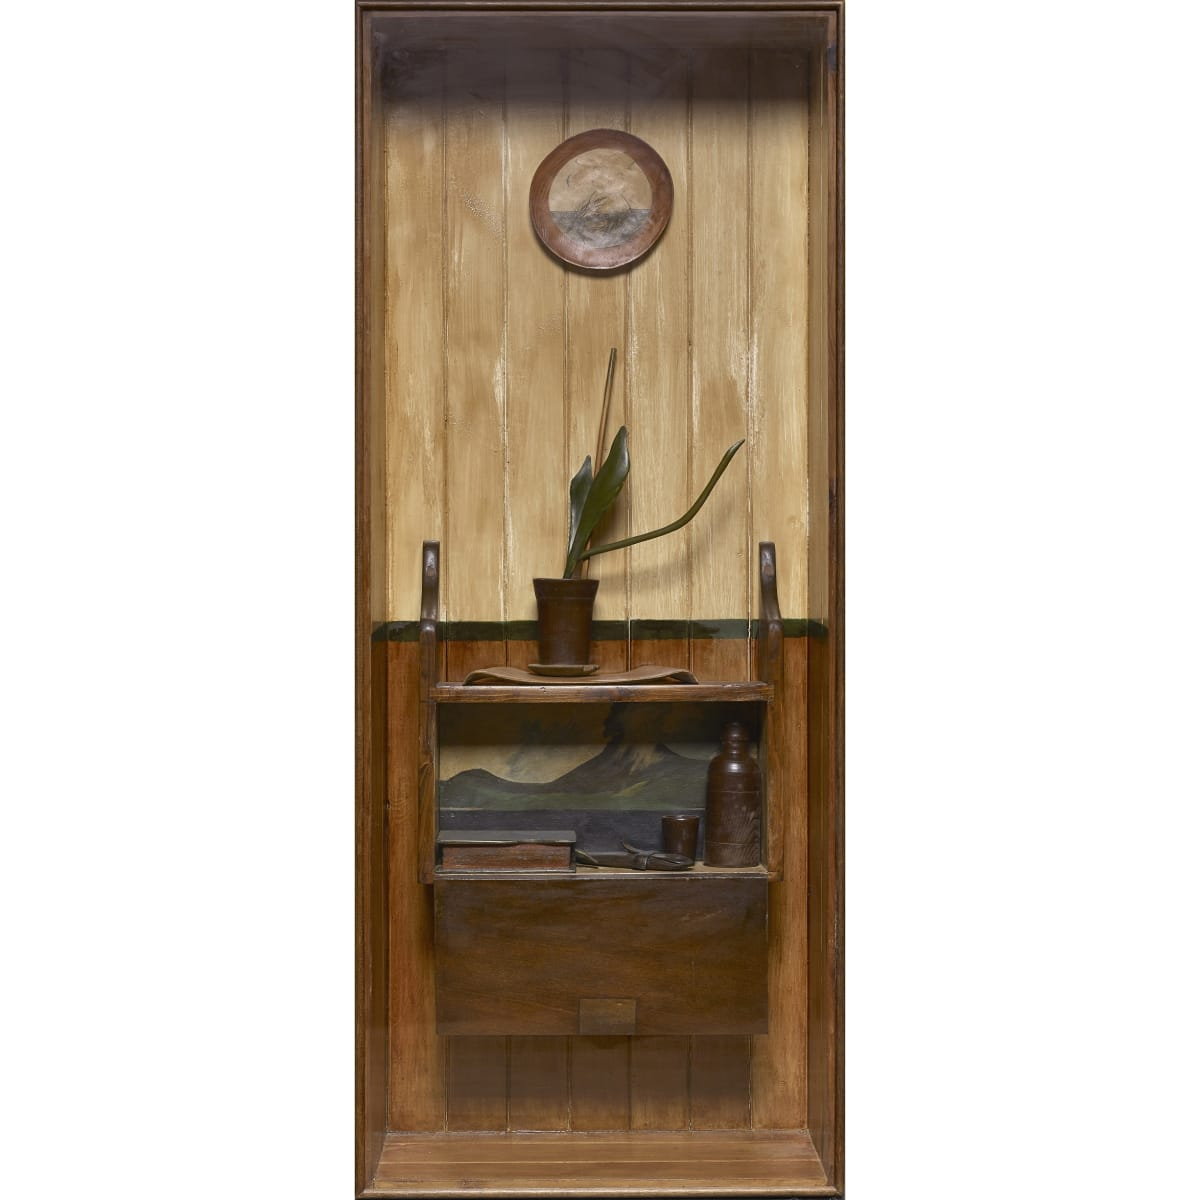 Will Maclean Interior, Wester Ross, 1980 signed and dated 1980; signed, titled and dated verso carved and painted wood box construction 139 x 56.5 x 22.4 cm